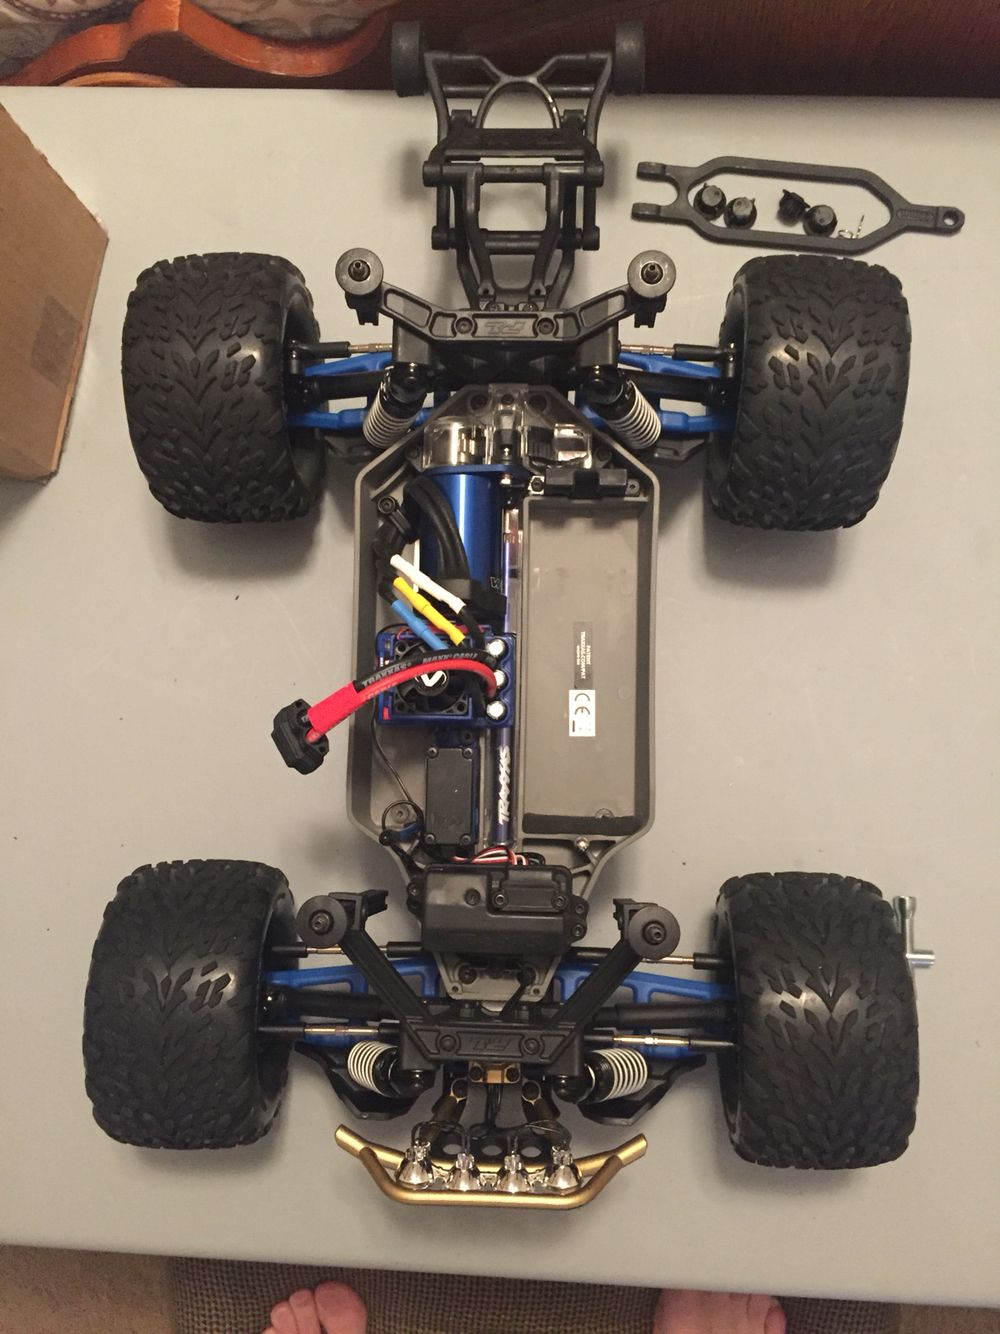 RPM A-arms blue installed on my Traxxas Stampede 4x4 VXL